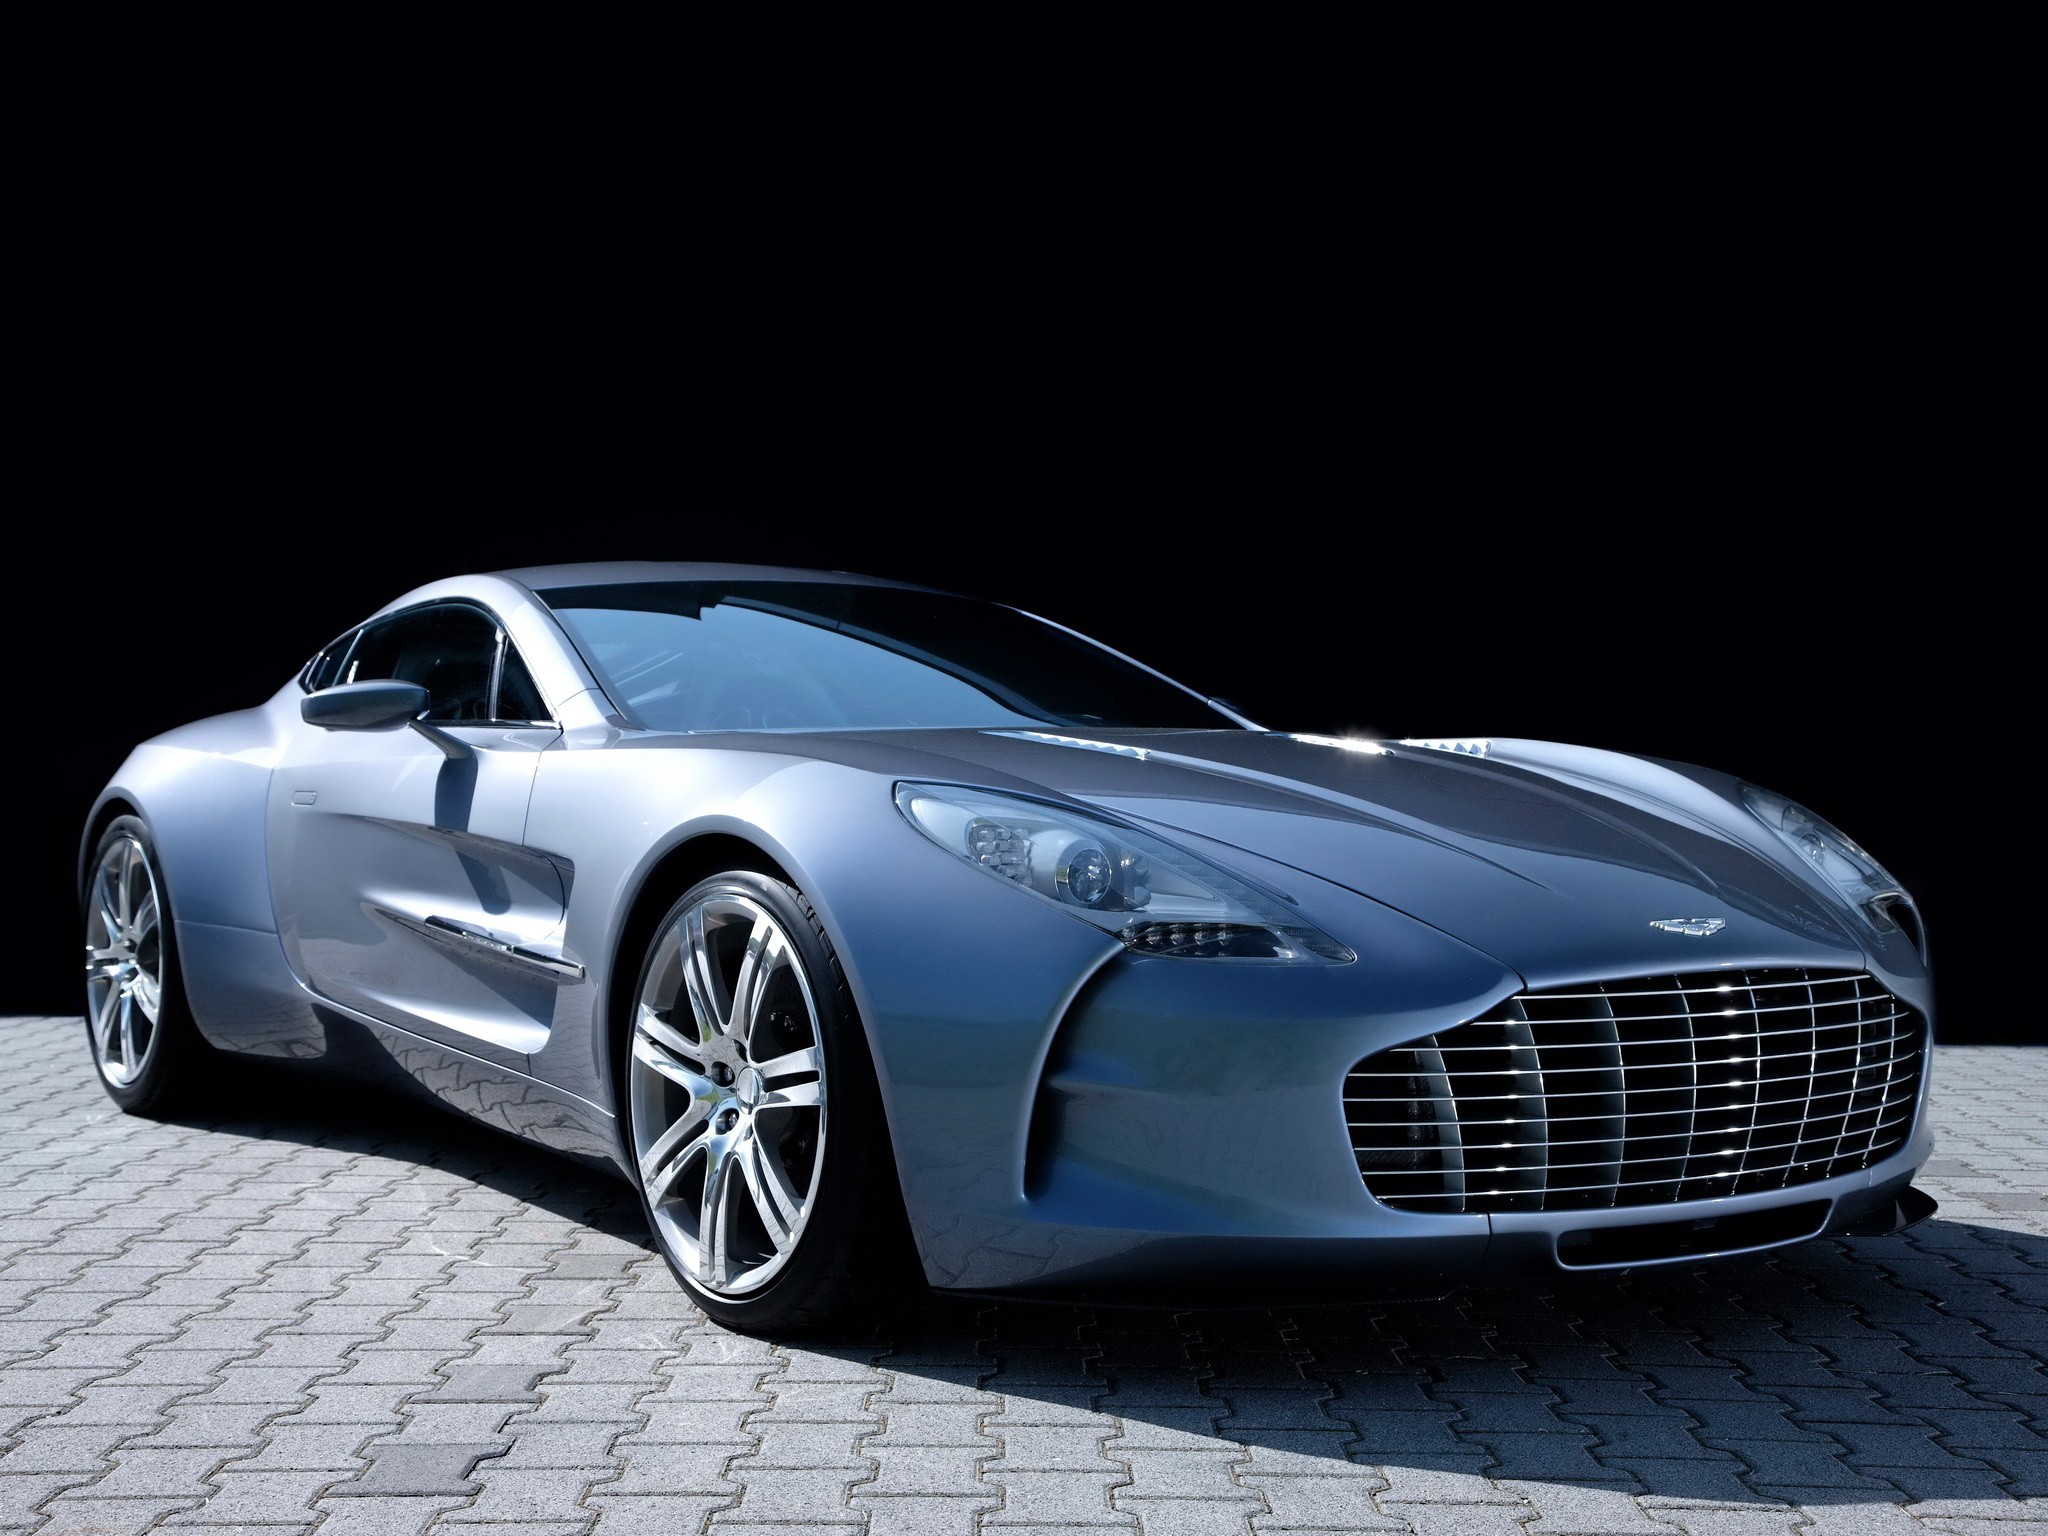 aston martin one 77 specs 2009 2010 2011 2012 autoevolution. Black Bedroom Furniture Sets. Home Design Ideas